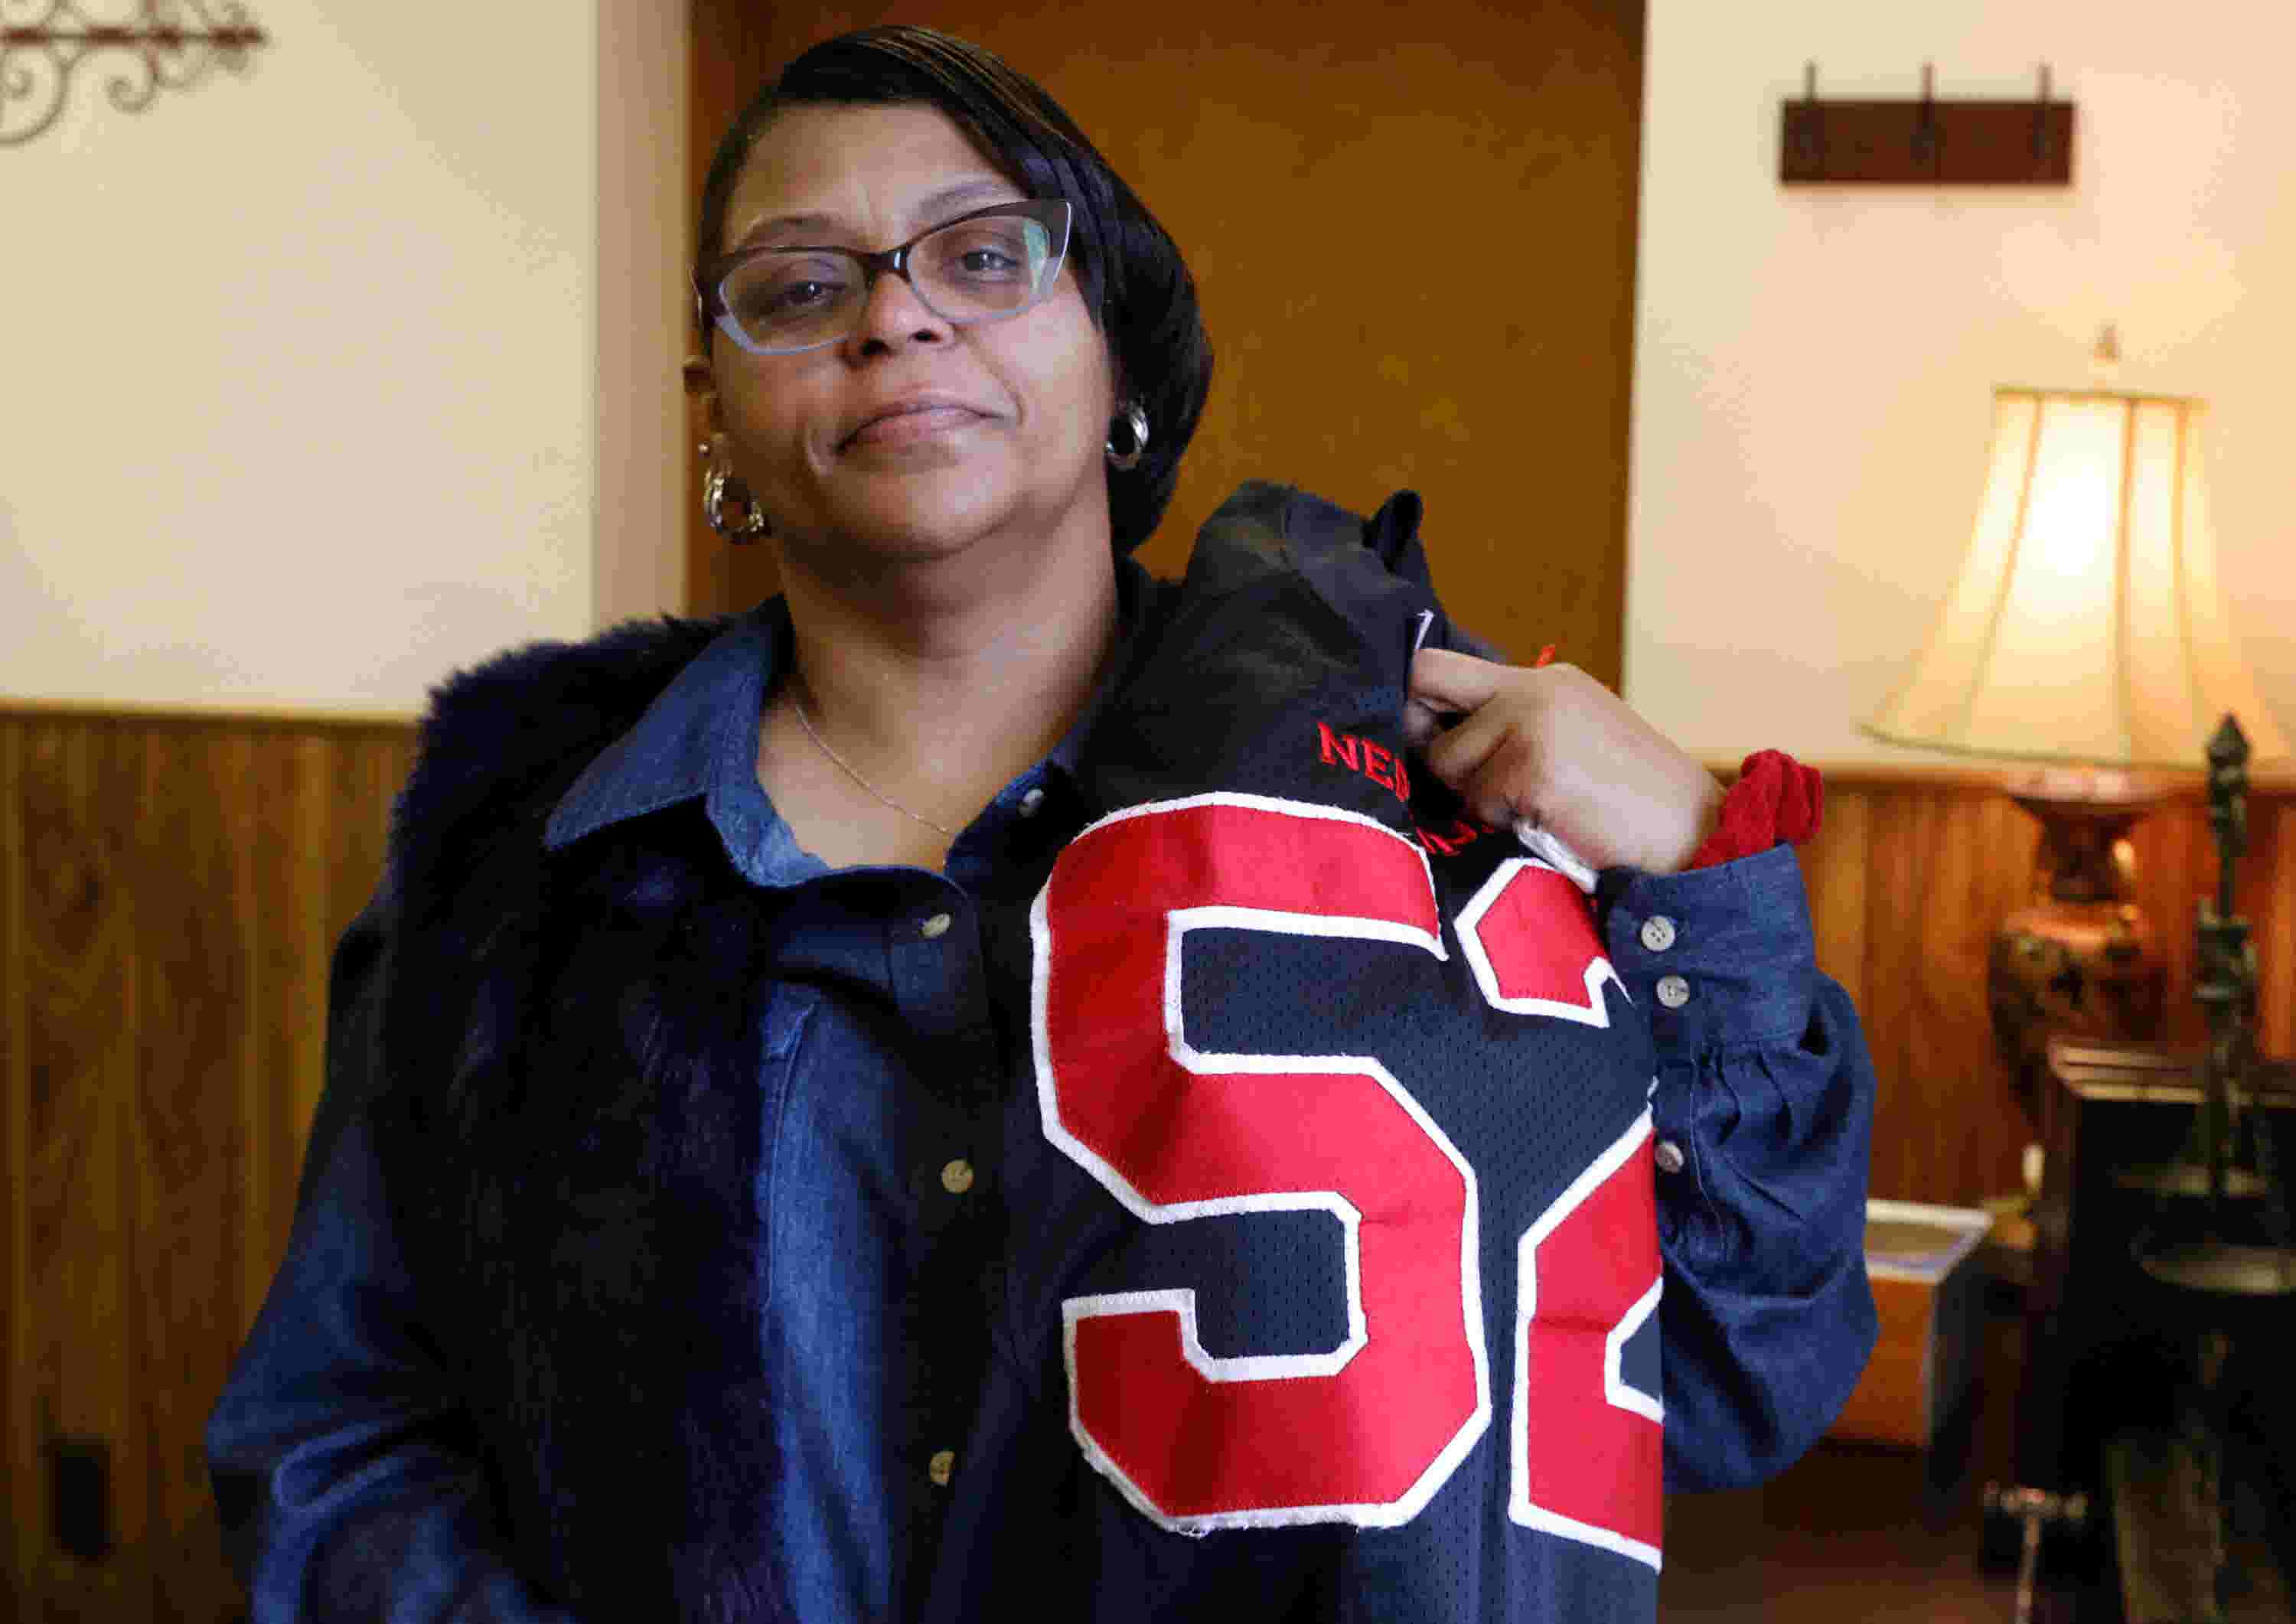 Mom Of Braeden Bradforth Nj Football Player Who Died Wants Answers